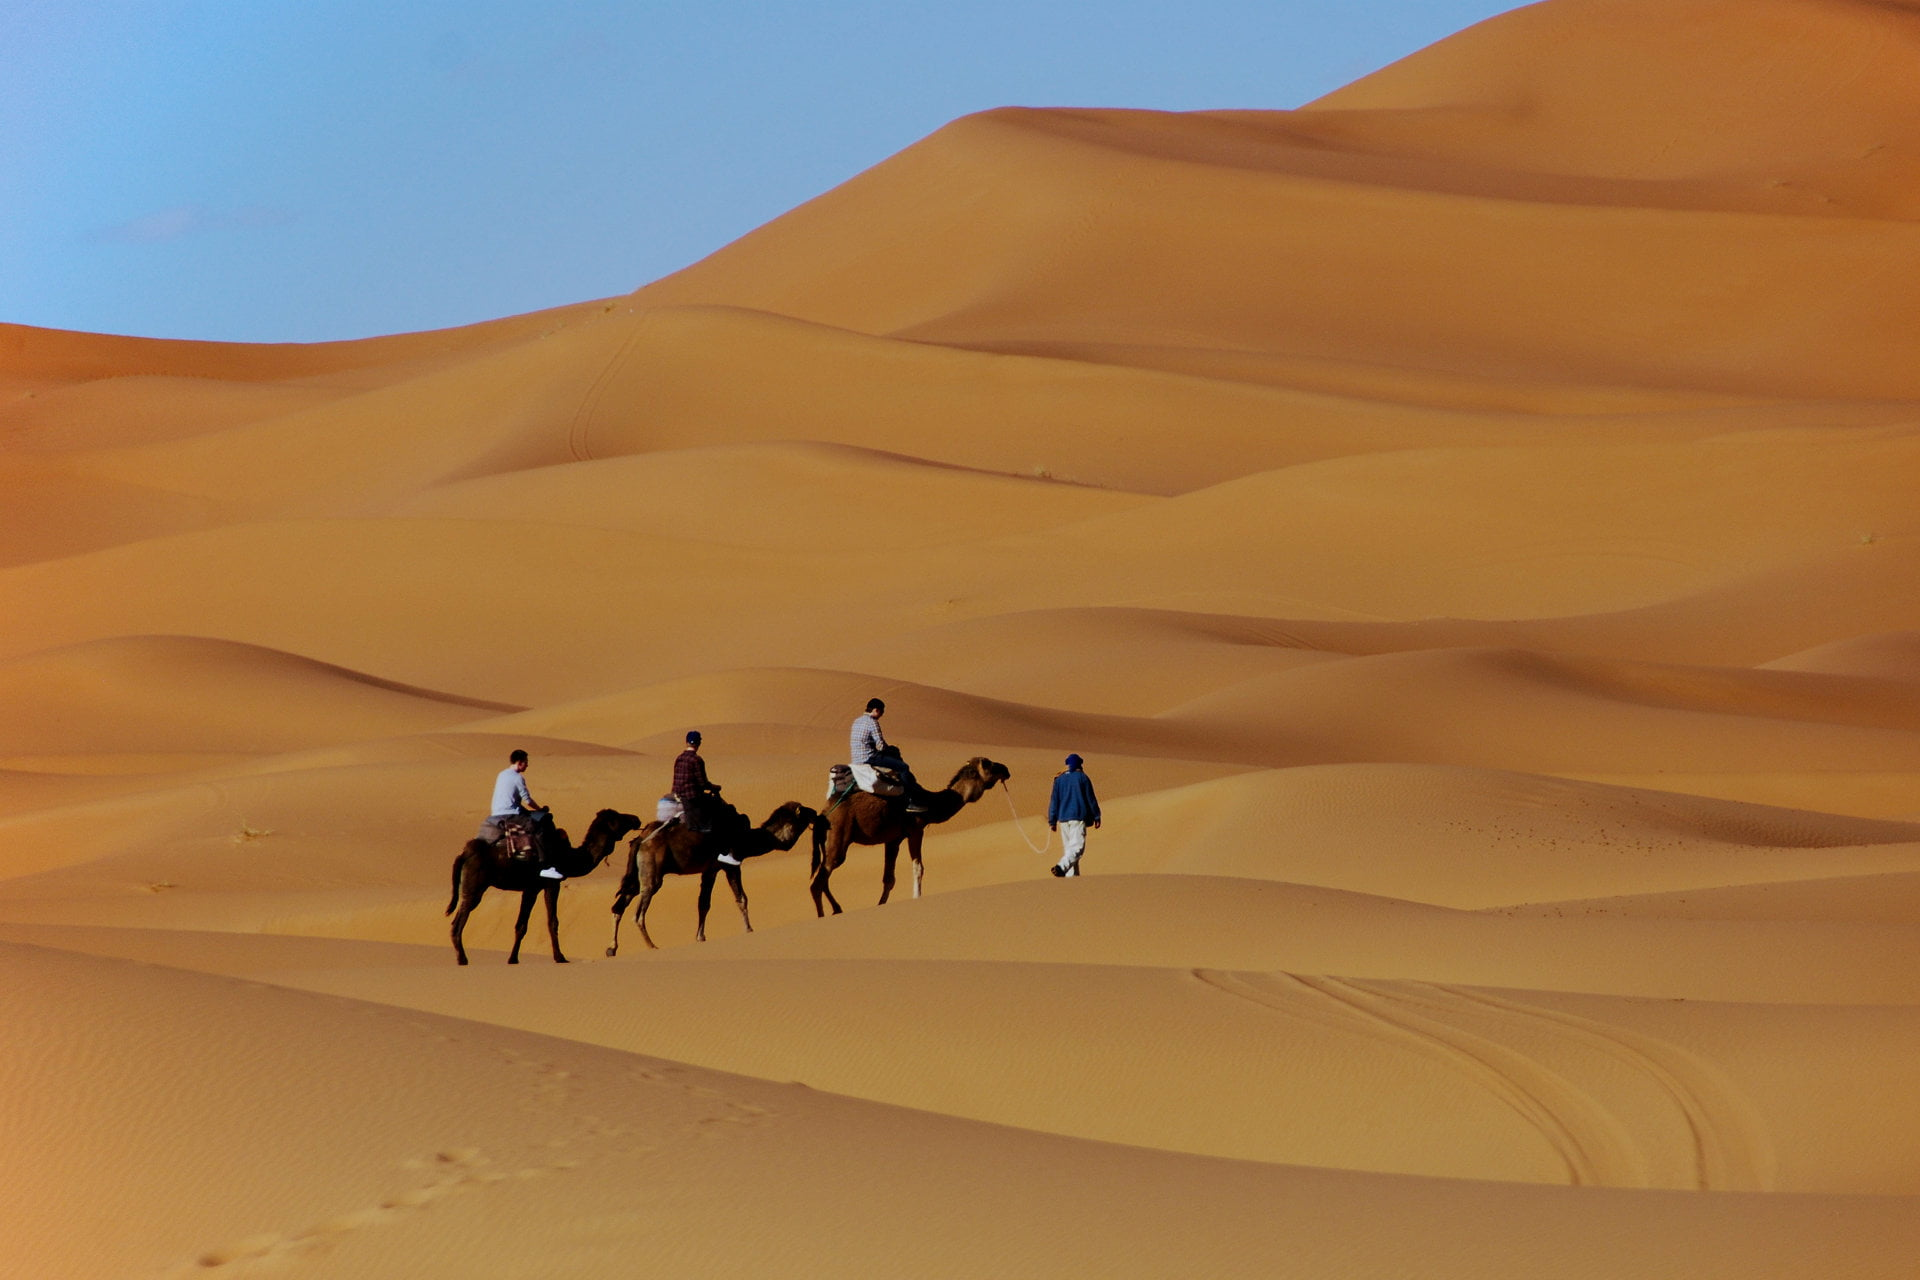 Camels and Dunes in Morocco